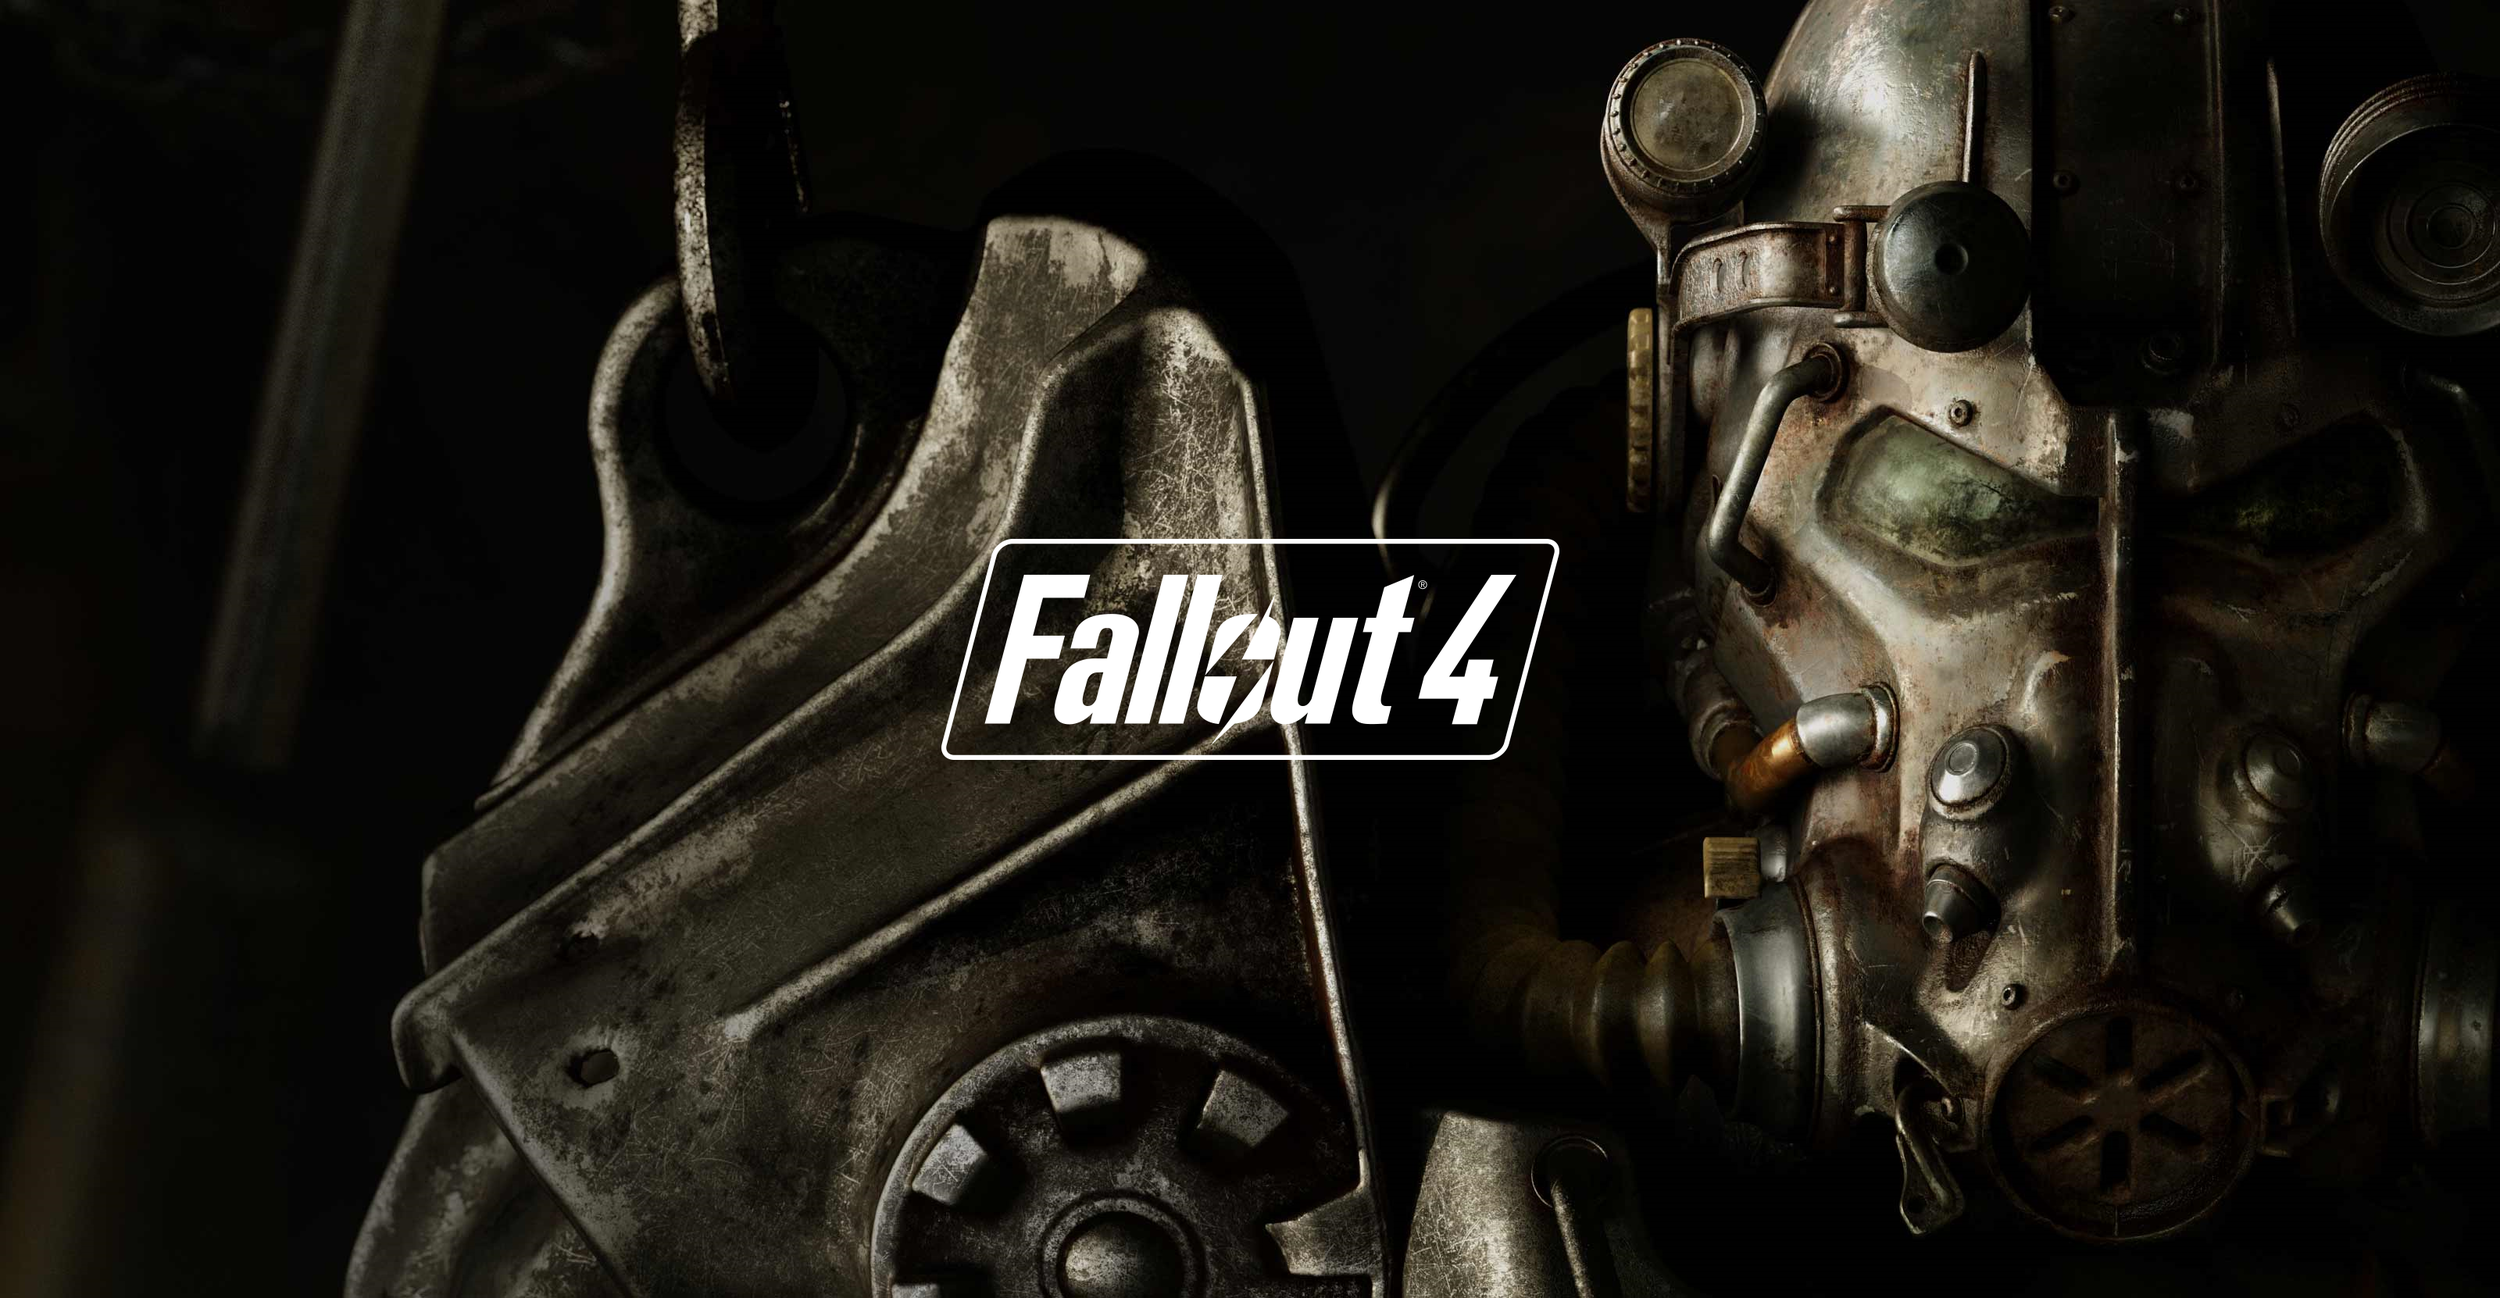 FALLOUT 4 LET'S PLAY - A playthrough of Fallout 4's main campagin.